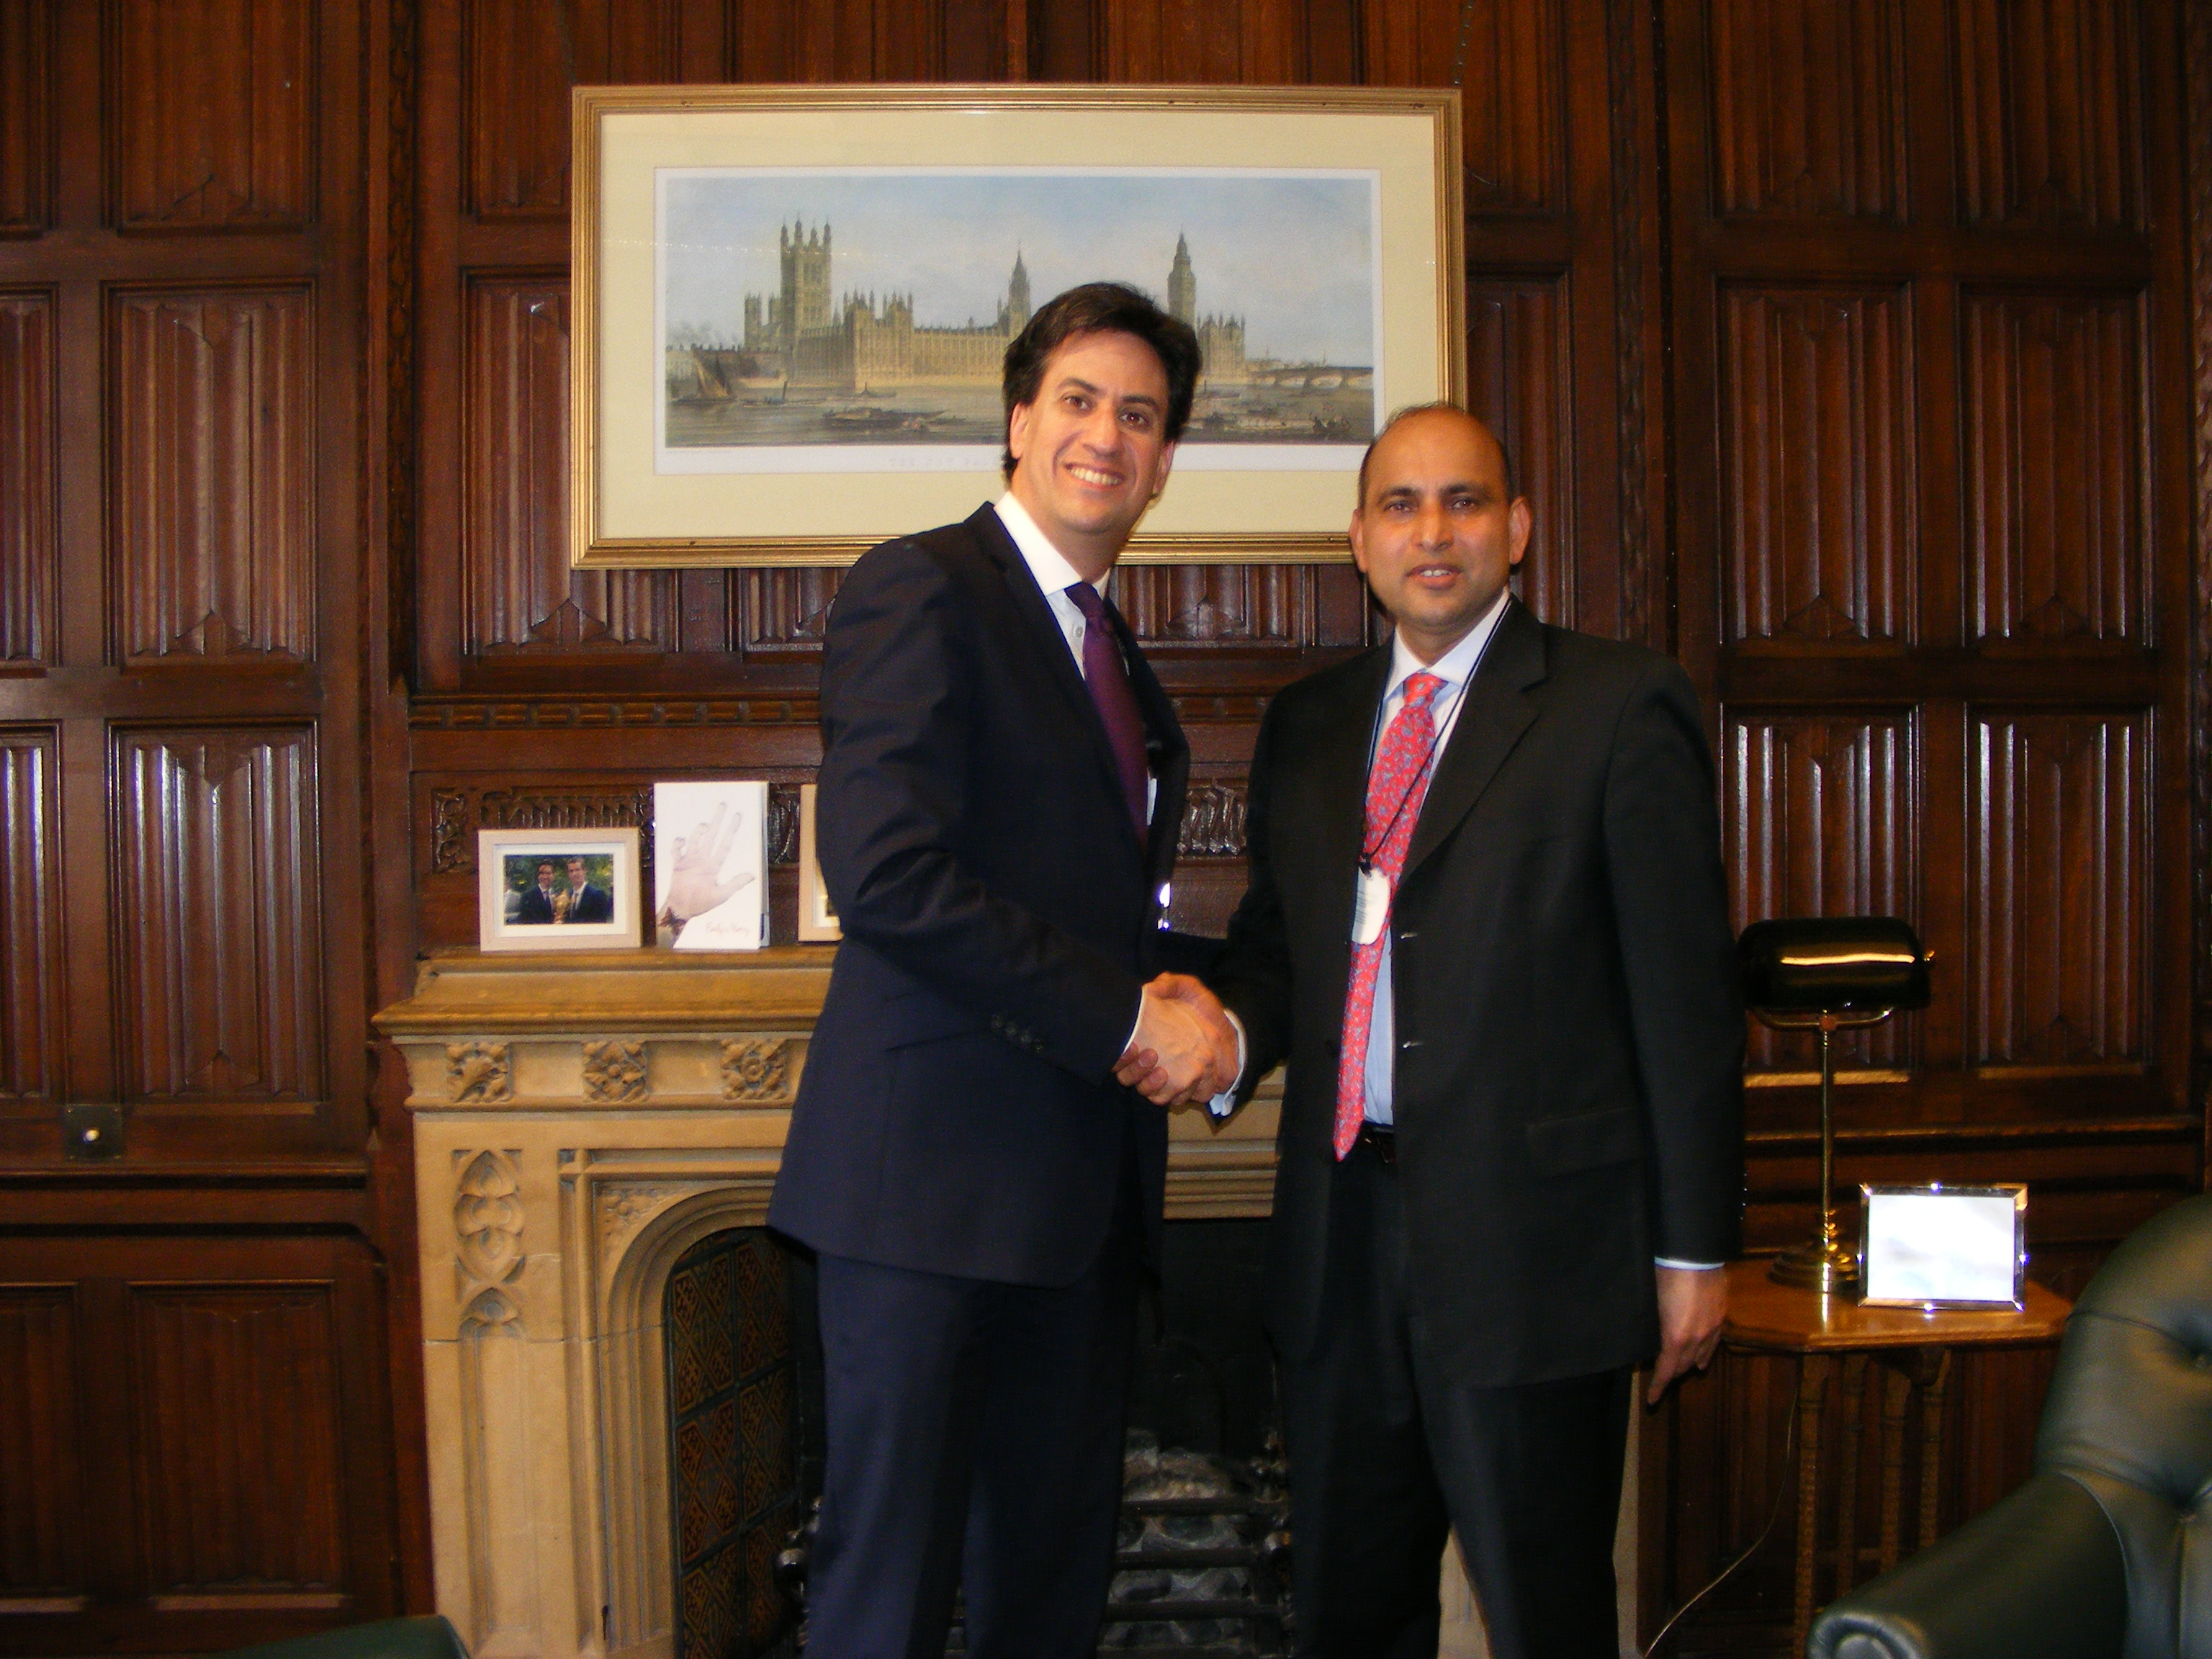 Ed_Miliband_and_Faiz.jpg